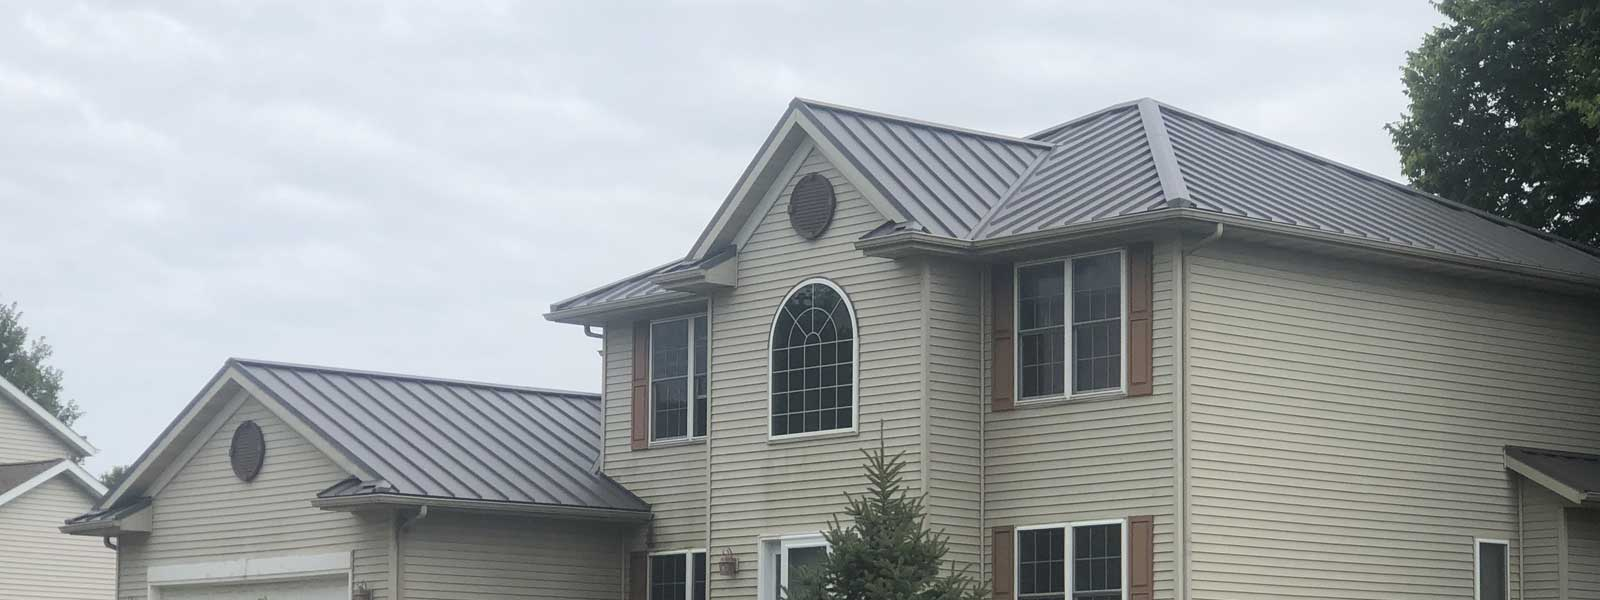 Metal Roofing Benefits. <br />Beauty, Durability and Energy Efficiency.